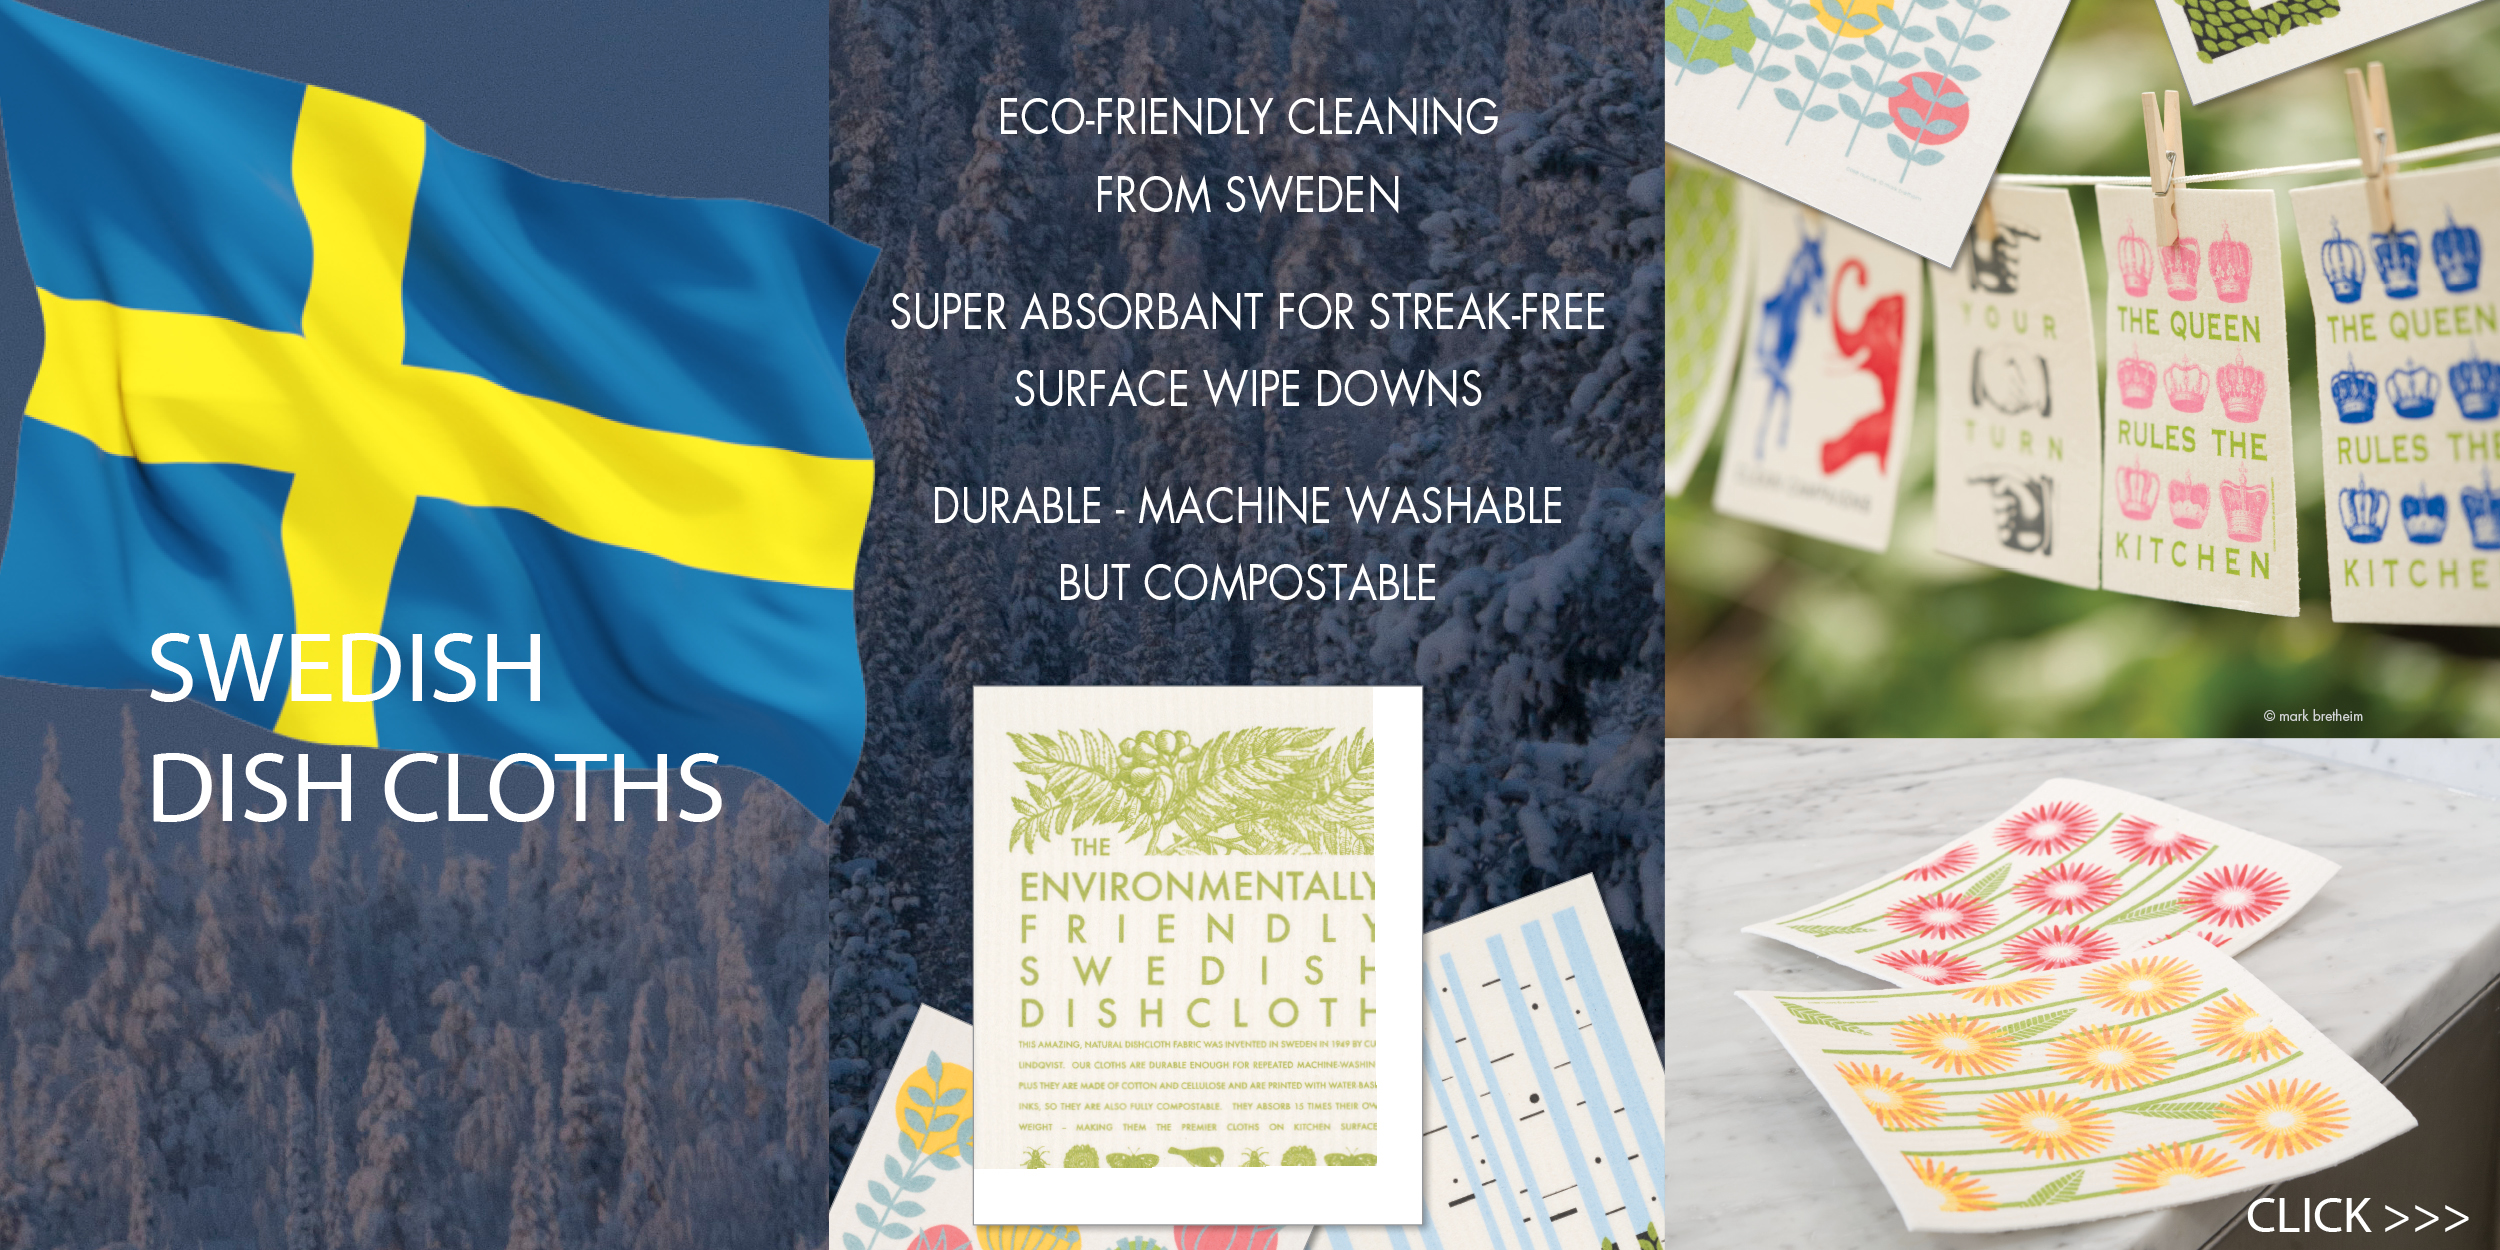 Swedish Dishcloths are available at The Nordic Shop